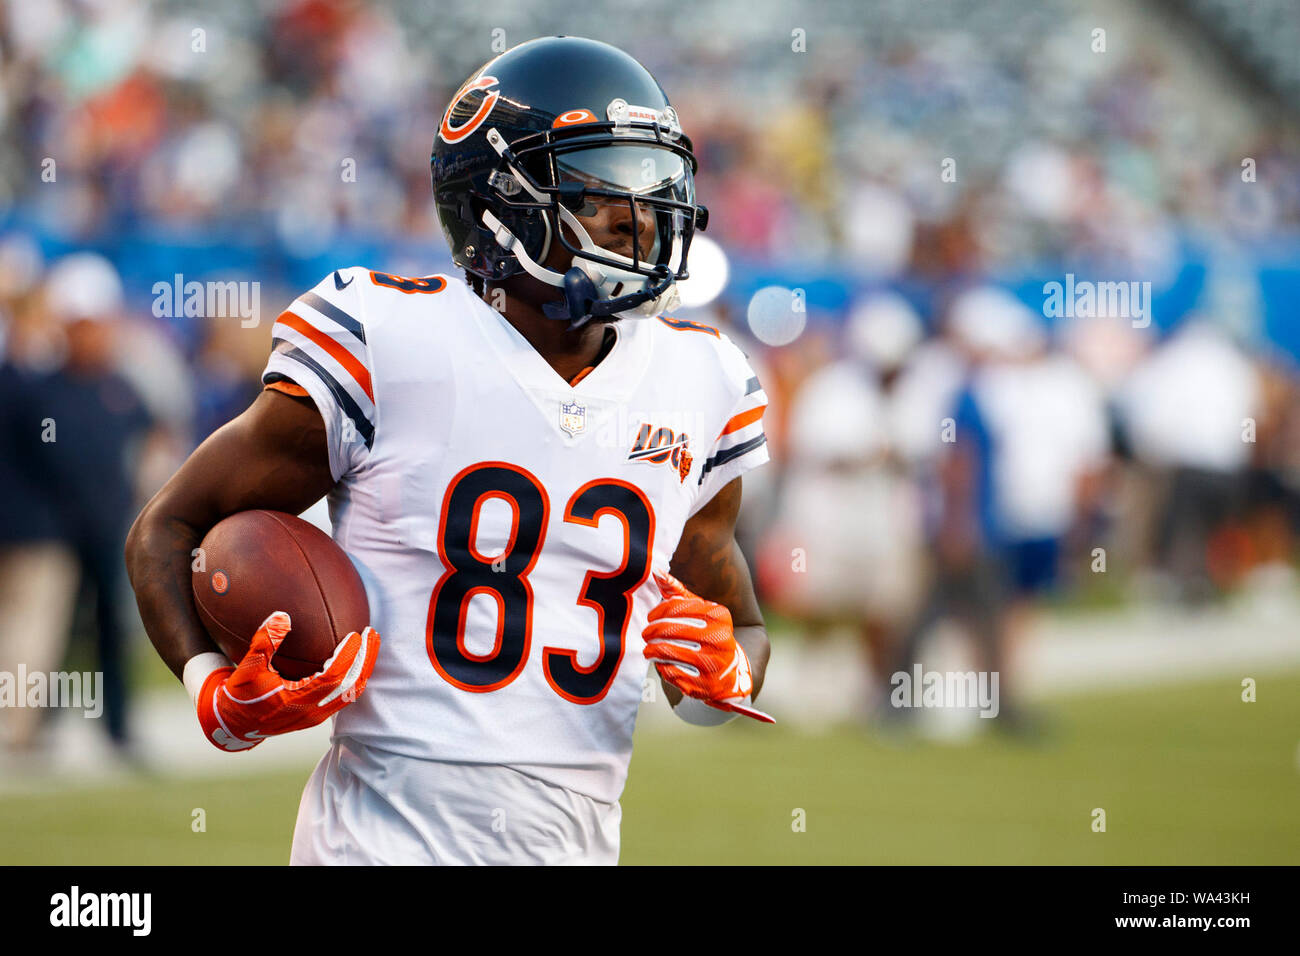 huge discount 5625f 8565d August 16, 2019, Chicago Bears wide receiver Javon Wims (83 ...